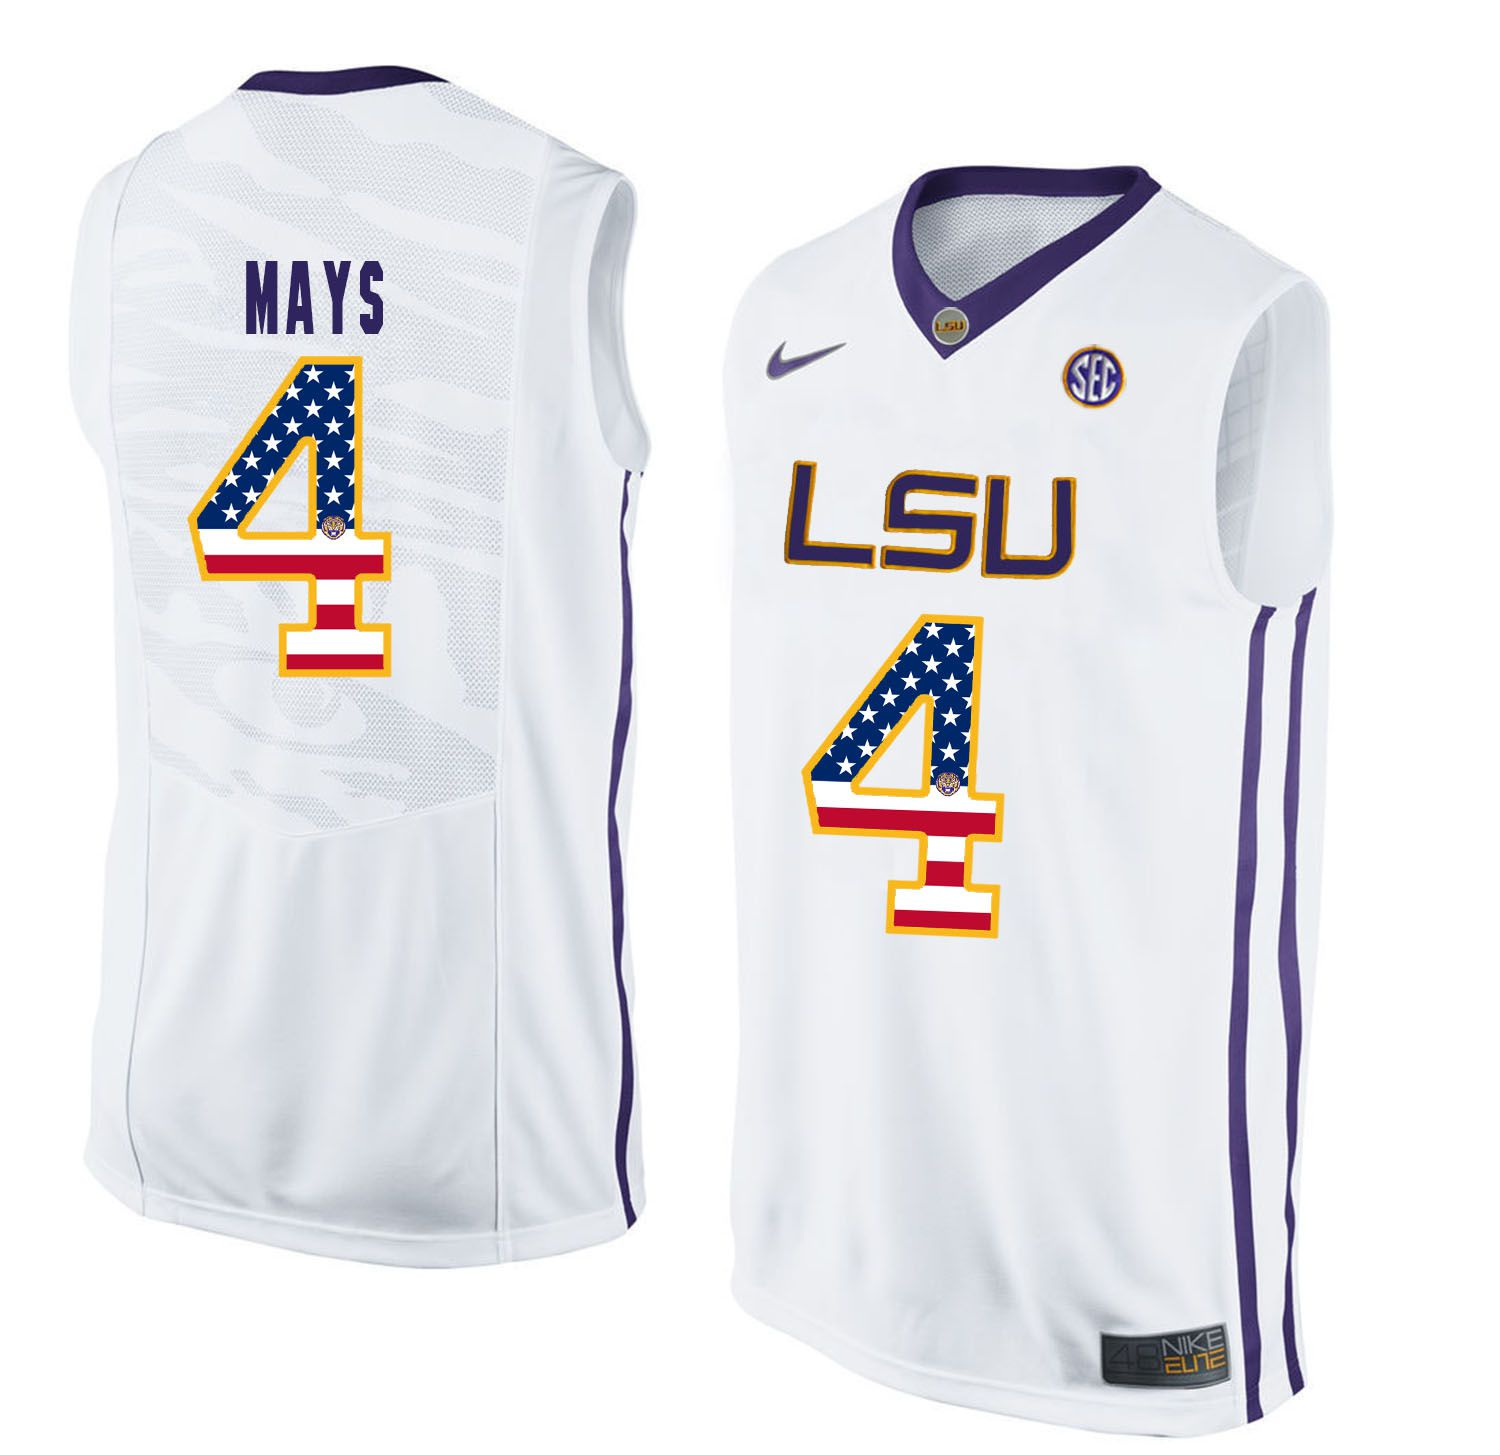 Men LSU Tigers 4 Mays White Flag Customized NCAA Jerseys